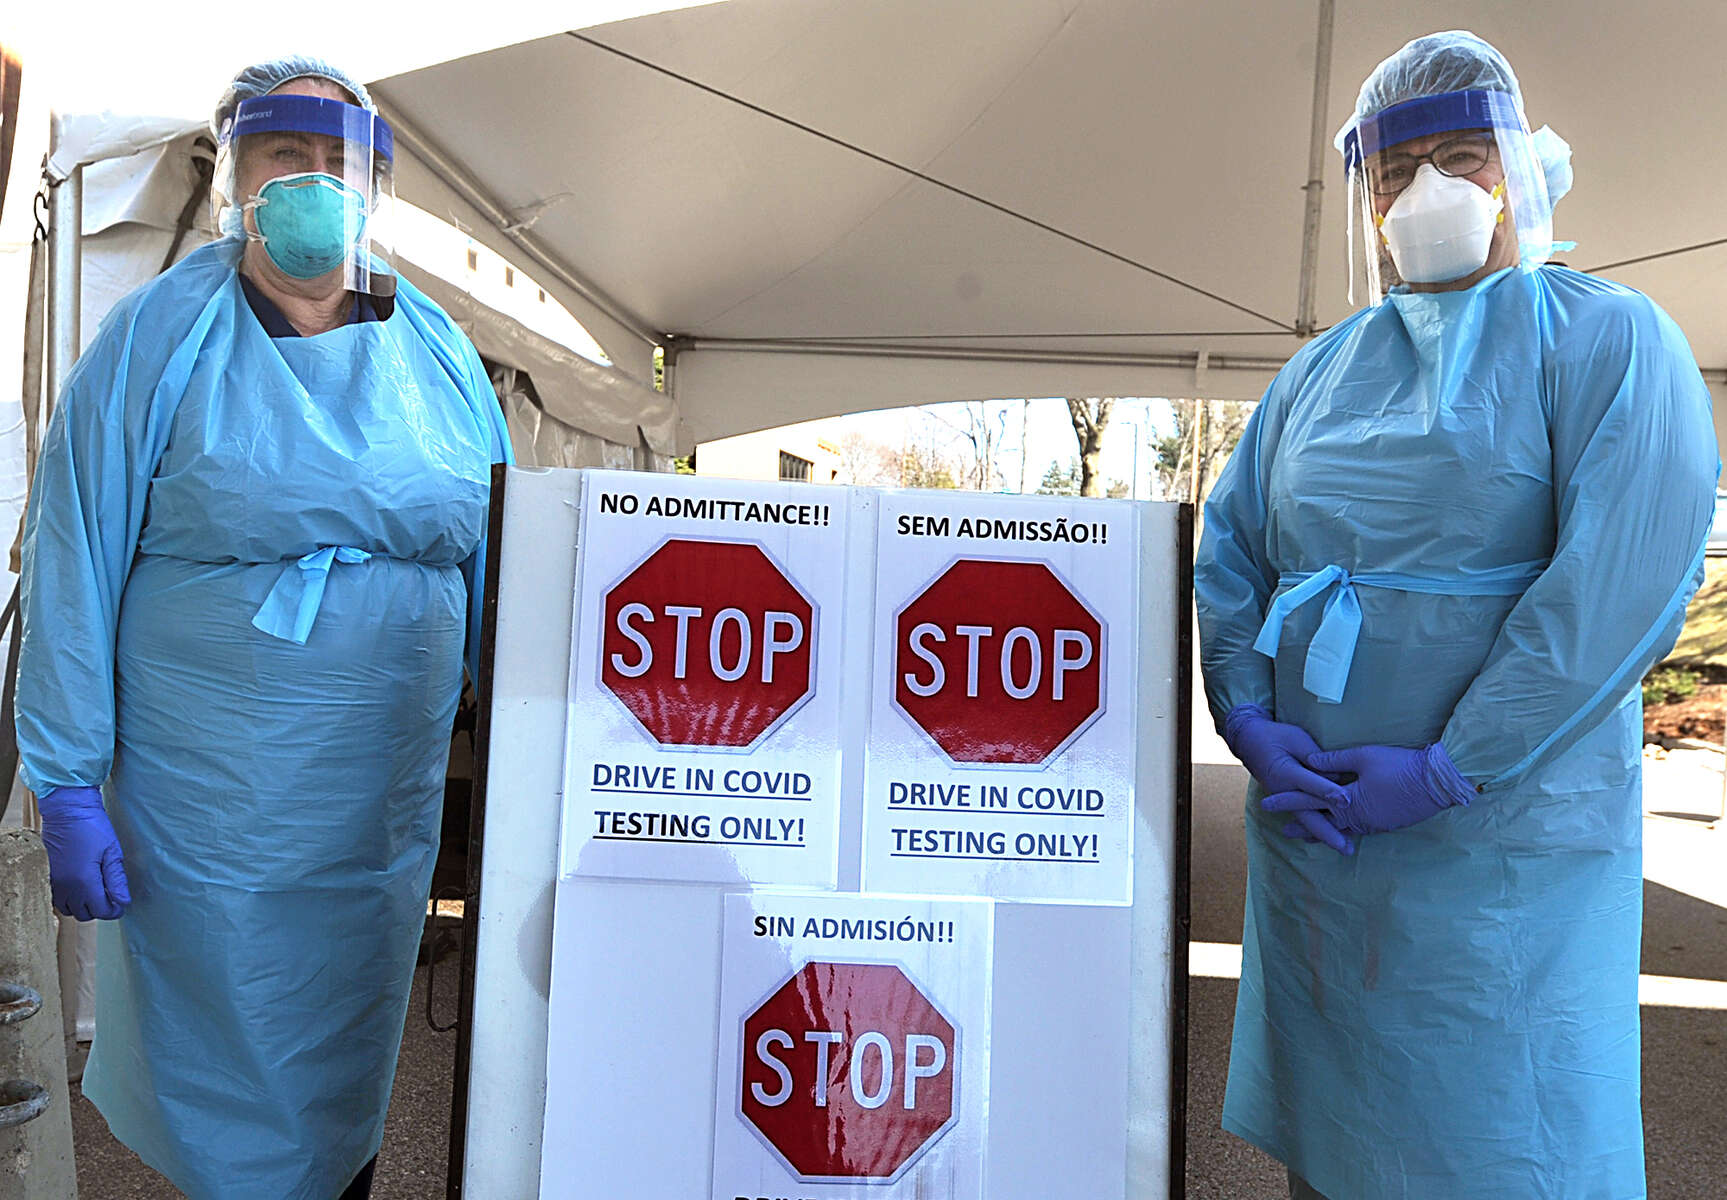 3/26/20-- MARLBOROUGH--  At UMass Memorial Marlborough Hospital on Thursday, registered nurses Becky Clarey, left, and Christine Howard wait to test people for COVID-19, outside a tent placed next to the main entrance. The hospital is testing people for the coronavirus with a physician's order, Monday through Saturday, 10 a.m. to 4 p.m., and on Sunday, 10 a.m. to 2 p.m. They are averaging about 30 tests per day, as of Thursday.  While urgent and emergent care is still available at the hospital, there are no elective outpatient services at this time. [Daily News and Wicked Local Staff Photo/Art Illman]